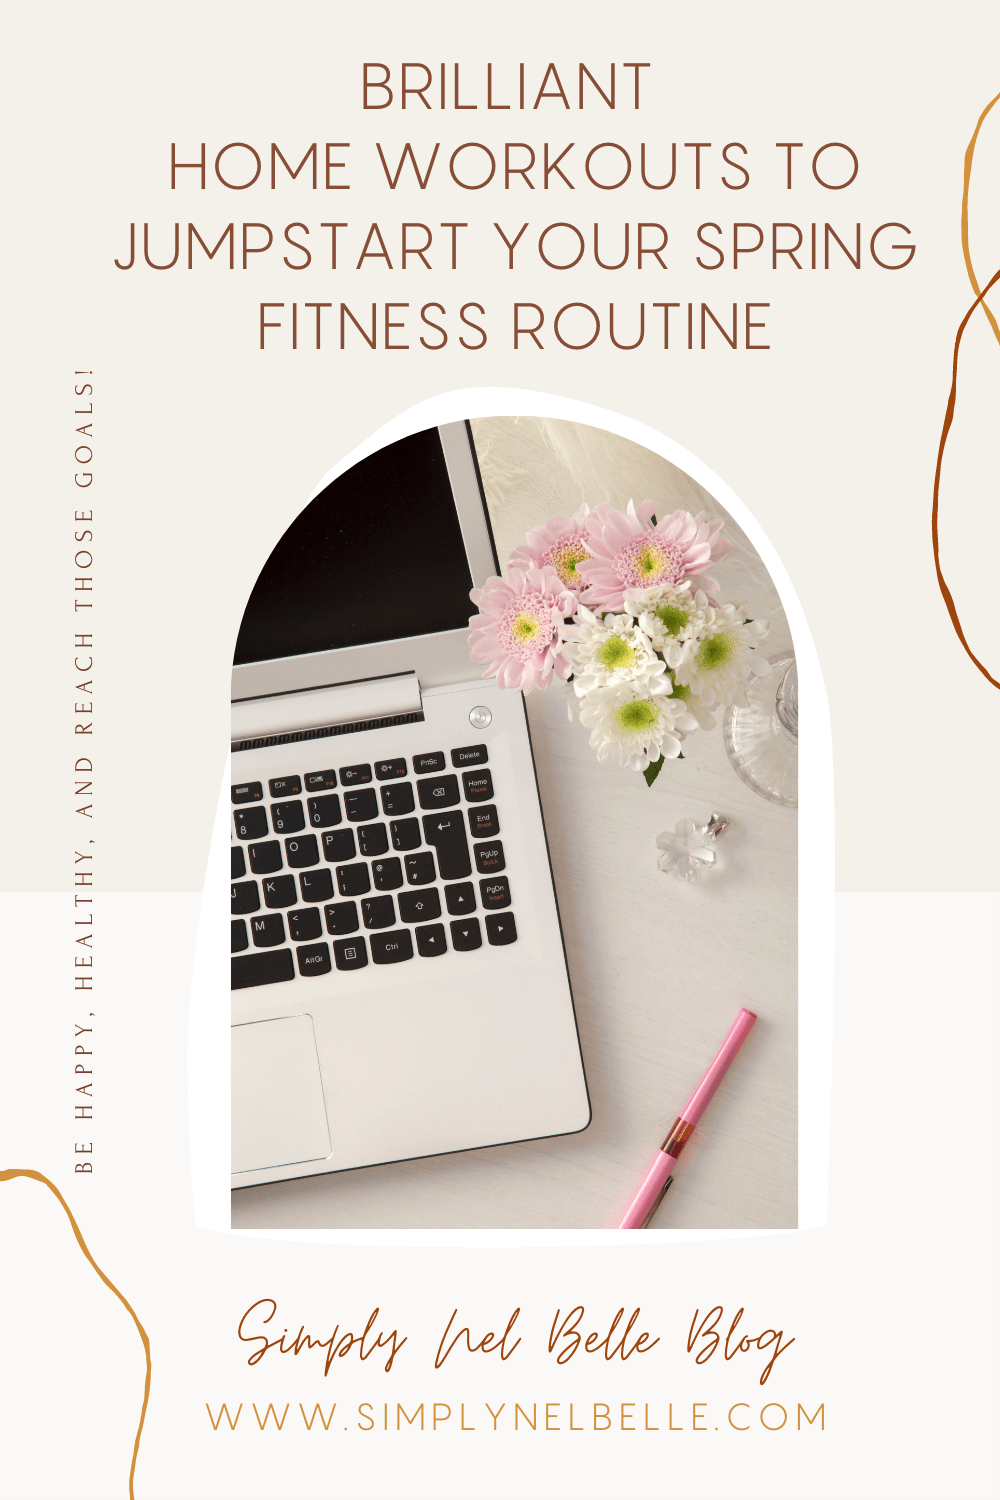 Home Workouts - Simply Nel Belle Blog